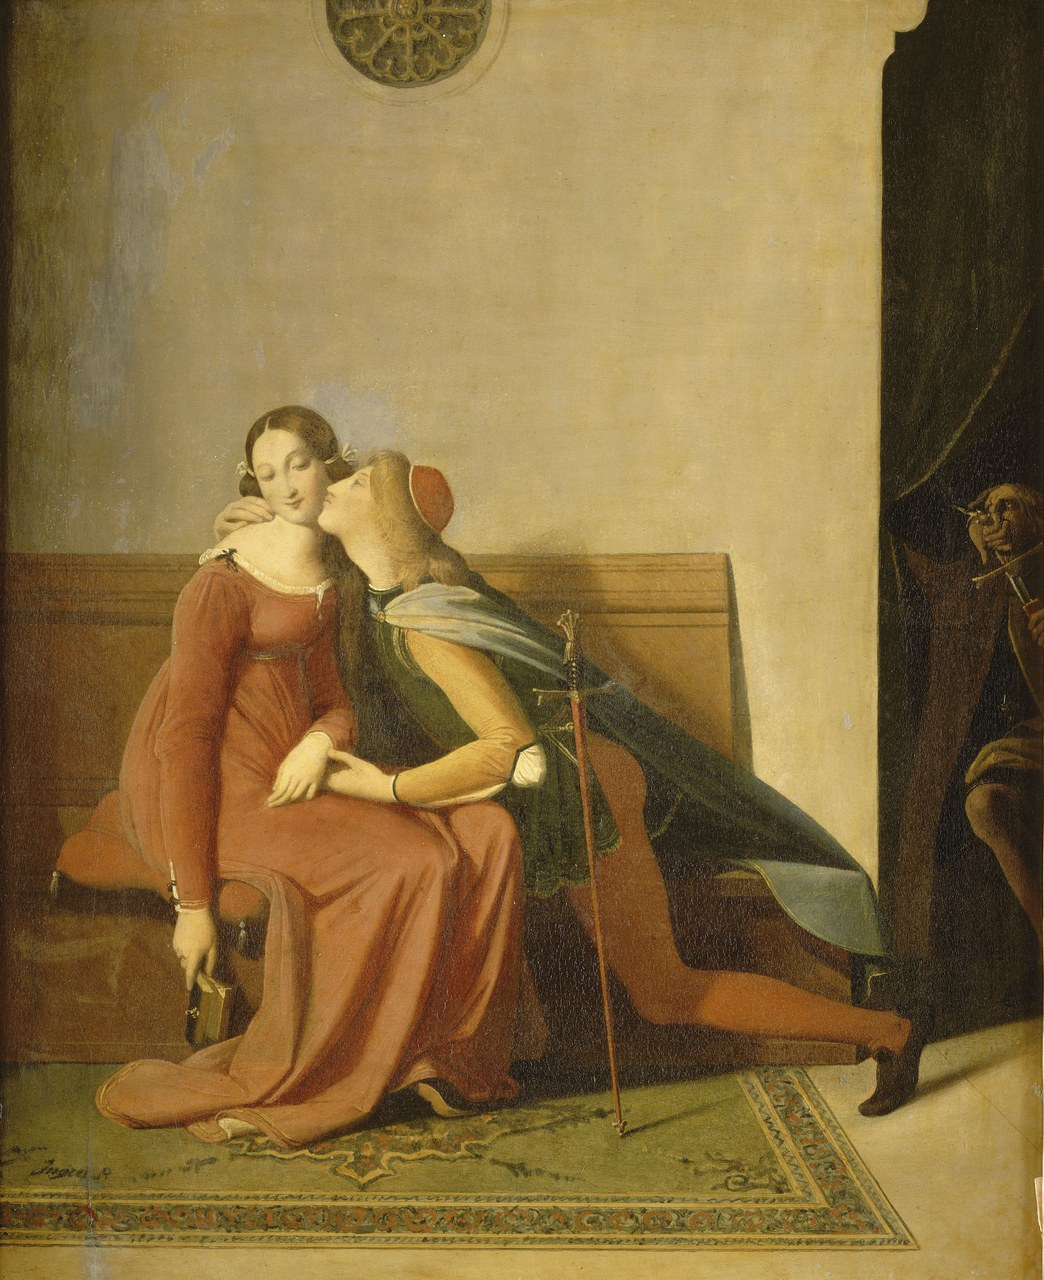 fig. 4 Jean-Dominique Ingres, Paolo e Francesca, 1814